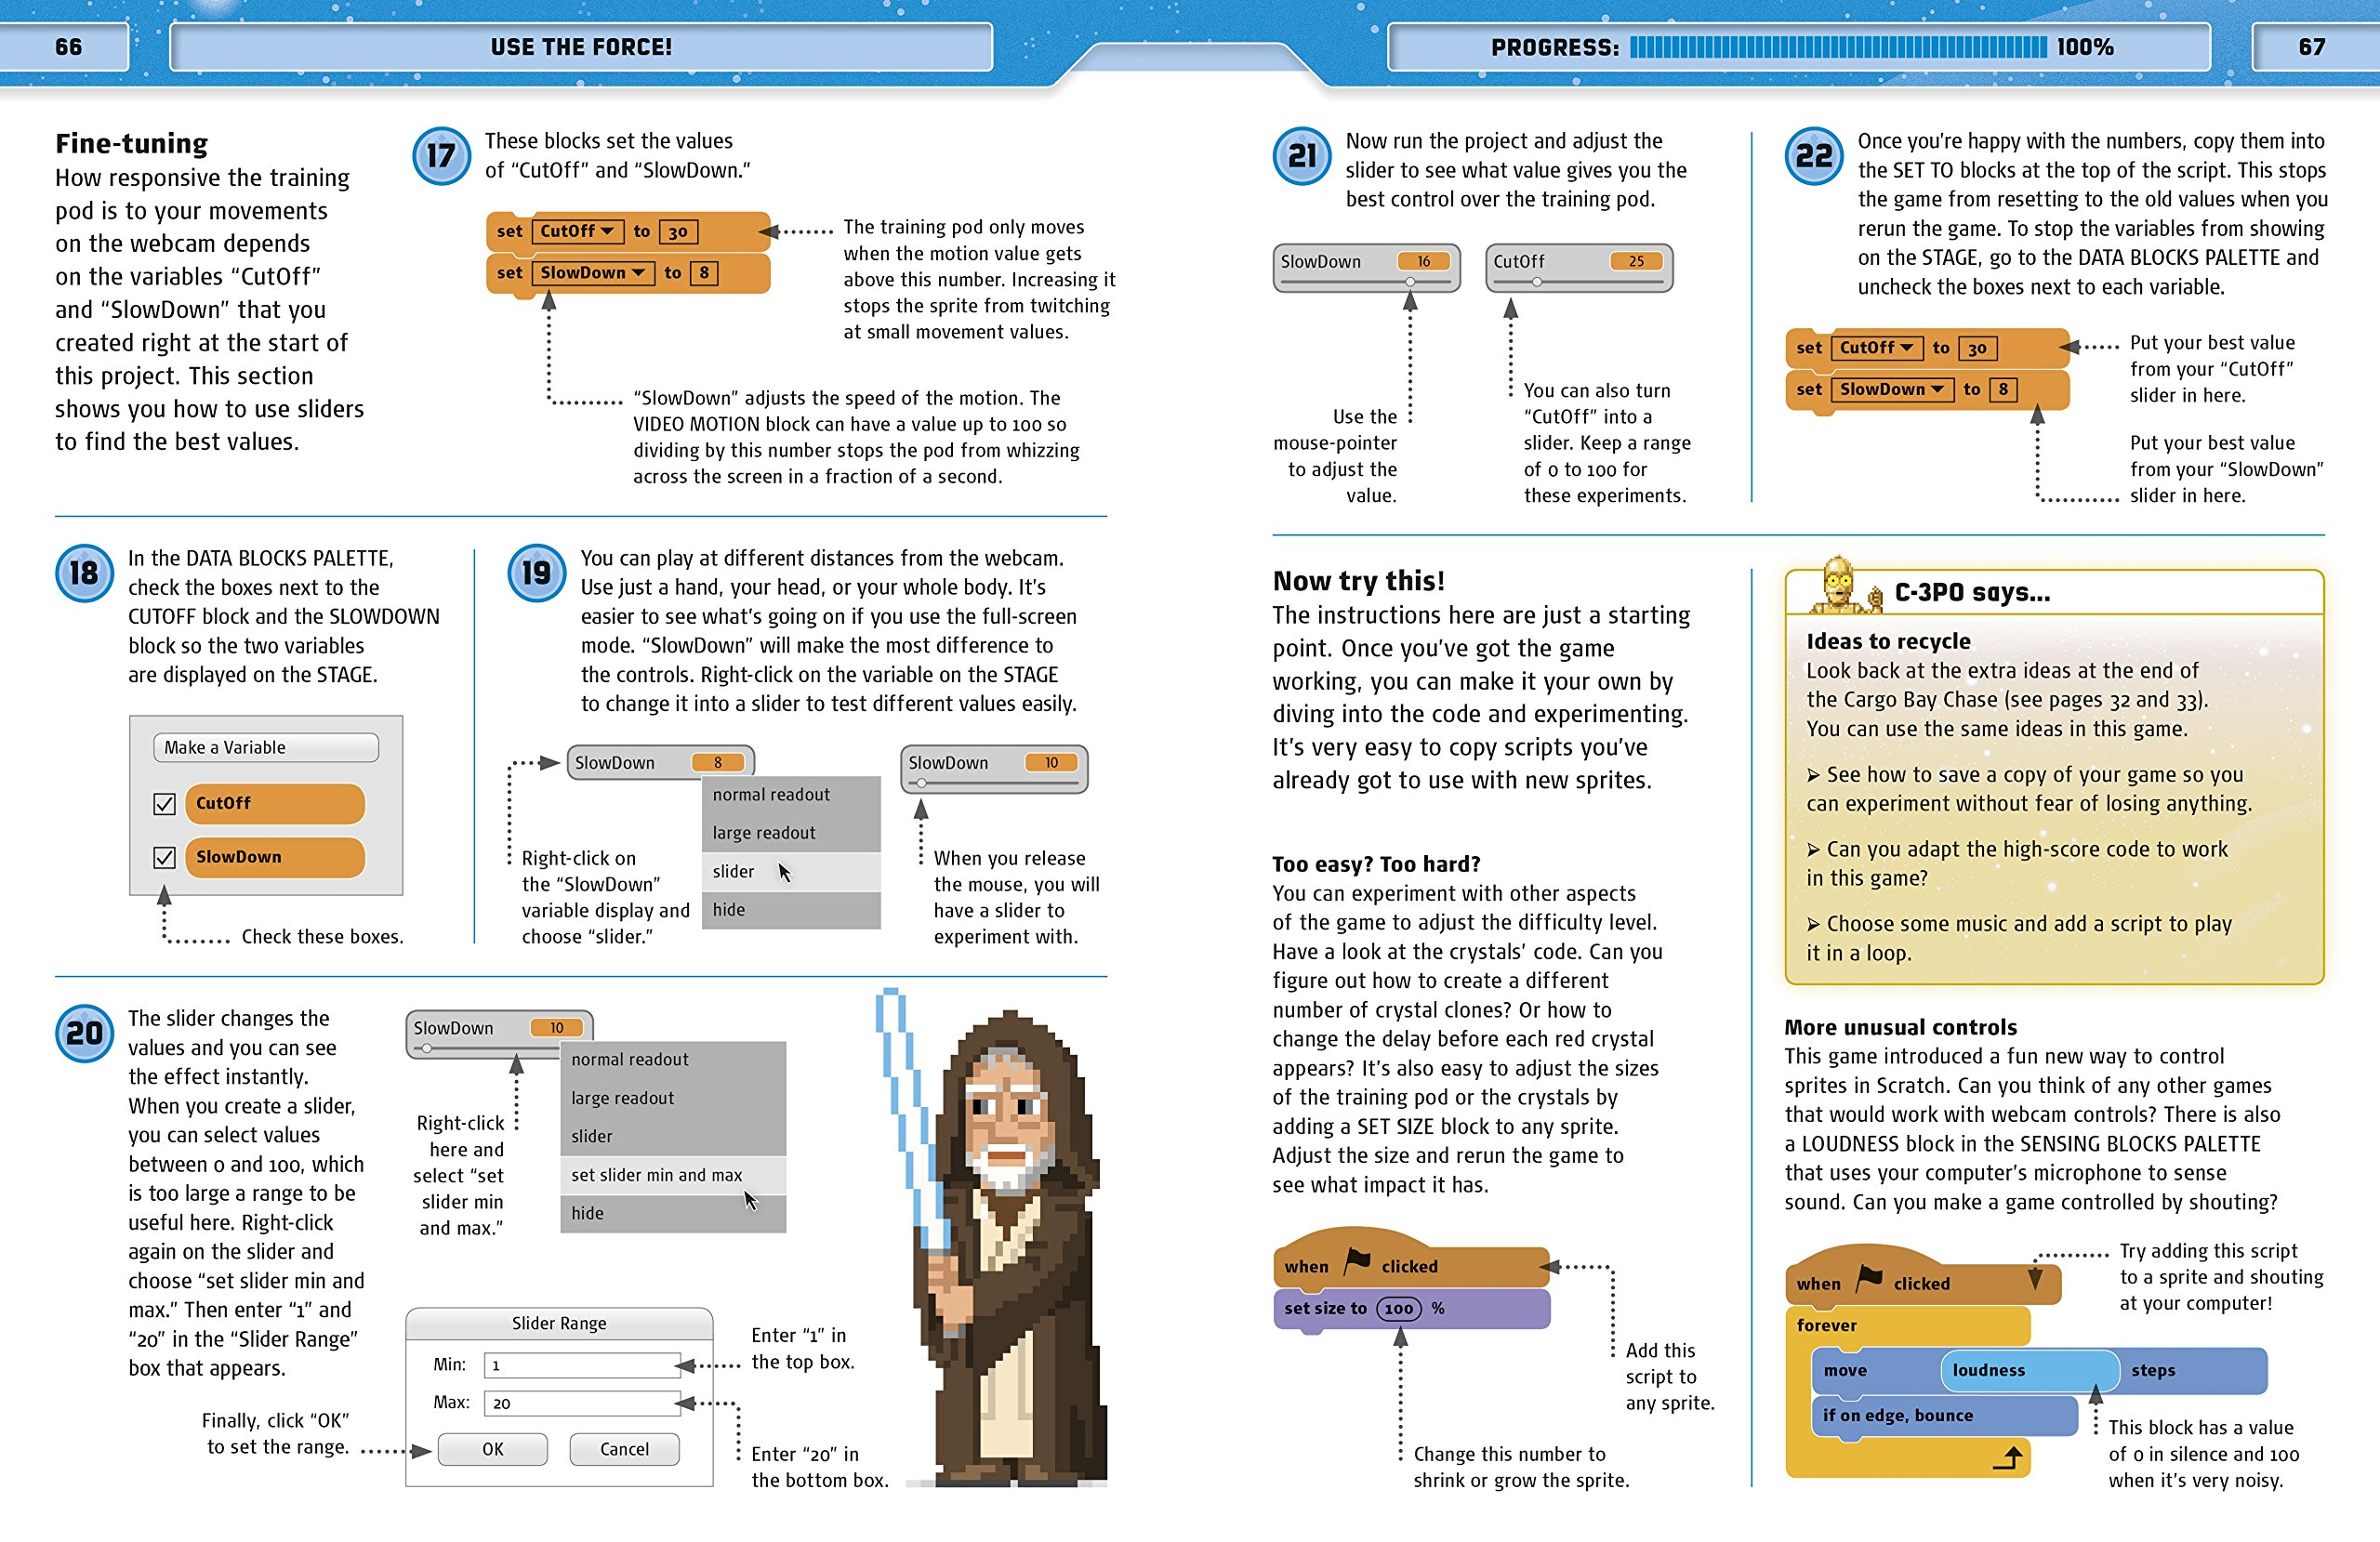 Star Wars Coding Projects: A Step-by-Step Visual Guide to